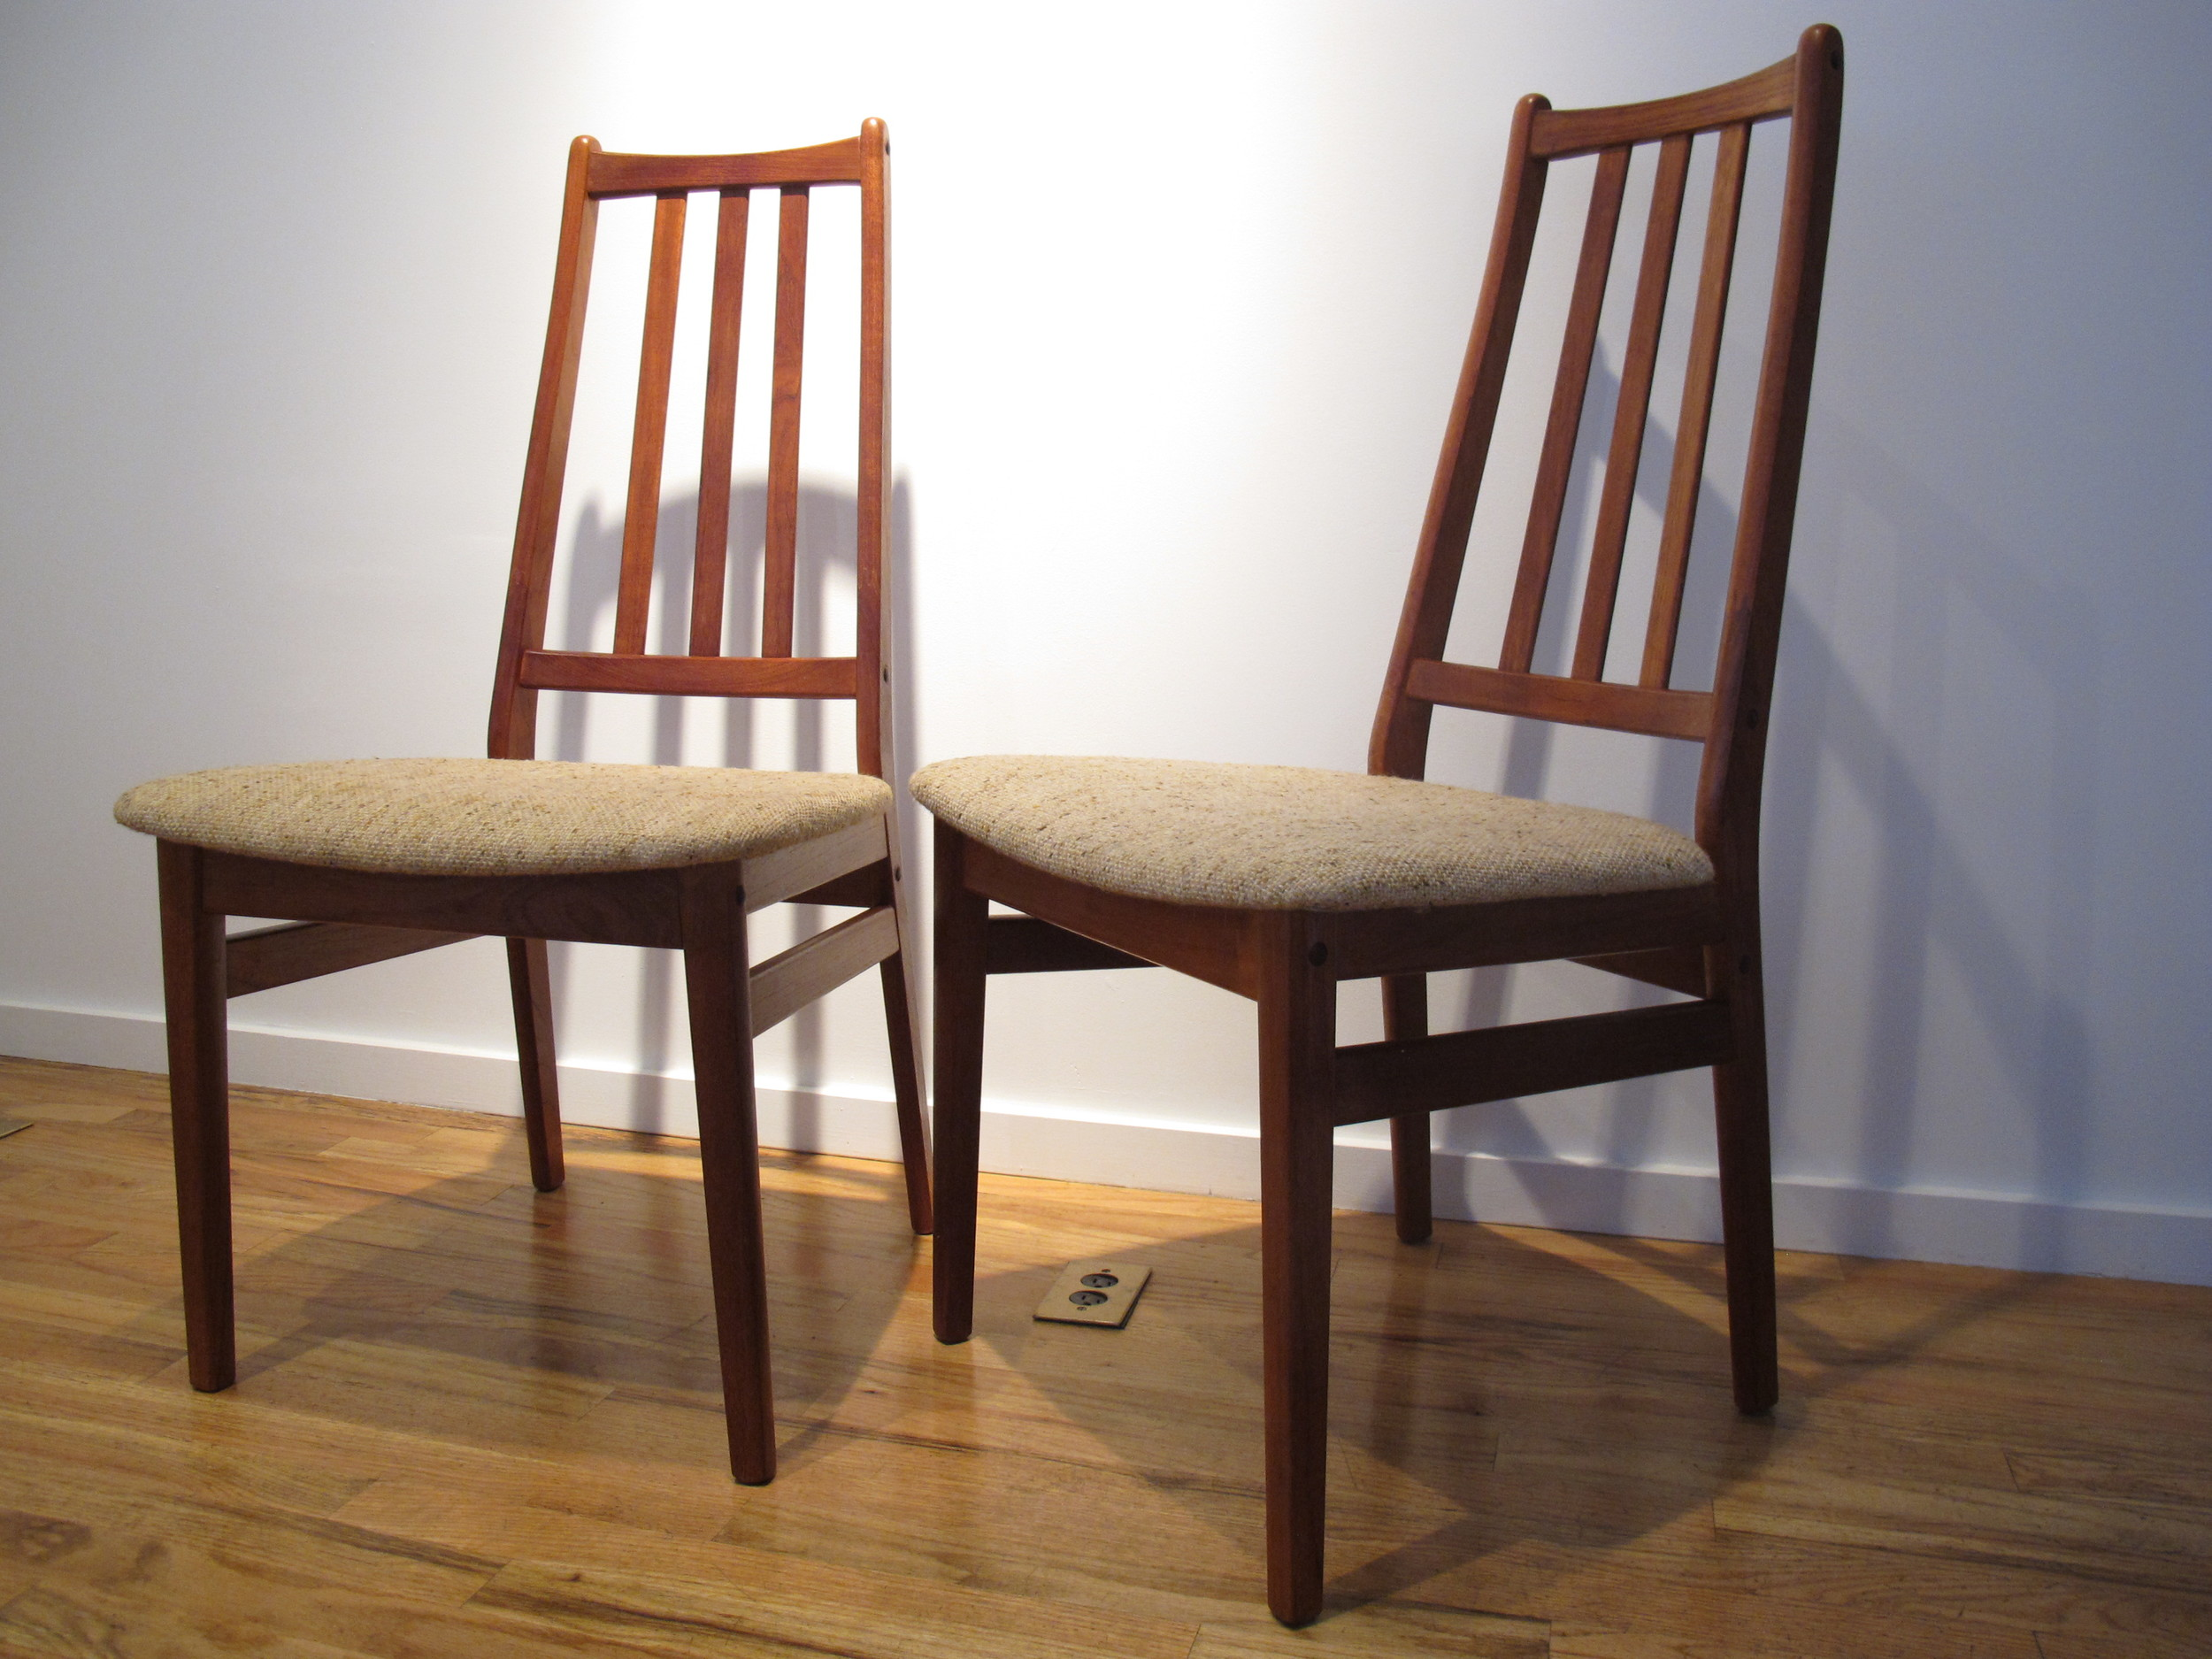 PAIR OF DANISH DINING CHAIRS STYLE AFTER NIELS KOEFOED